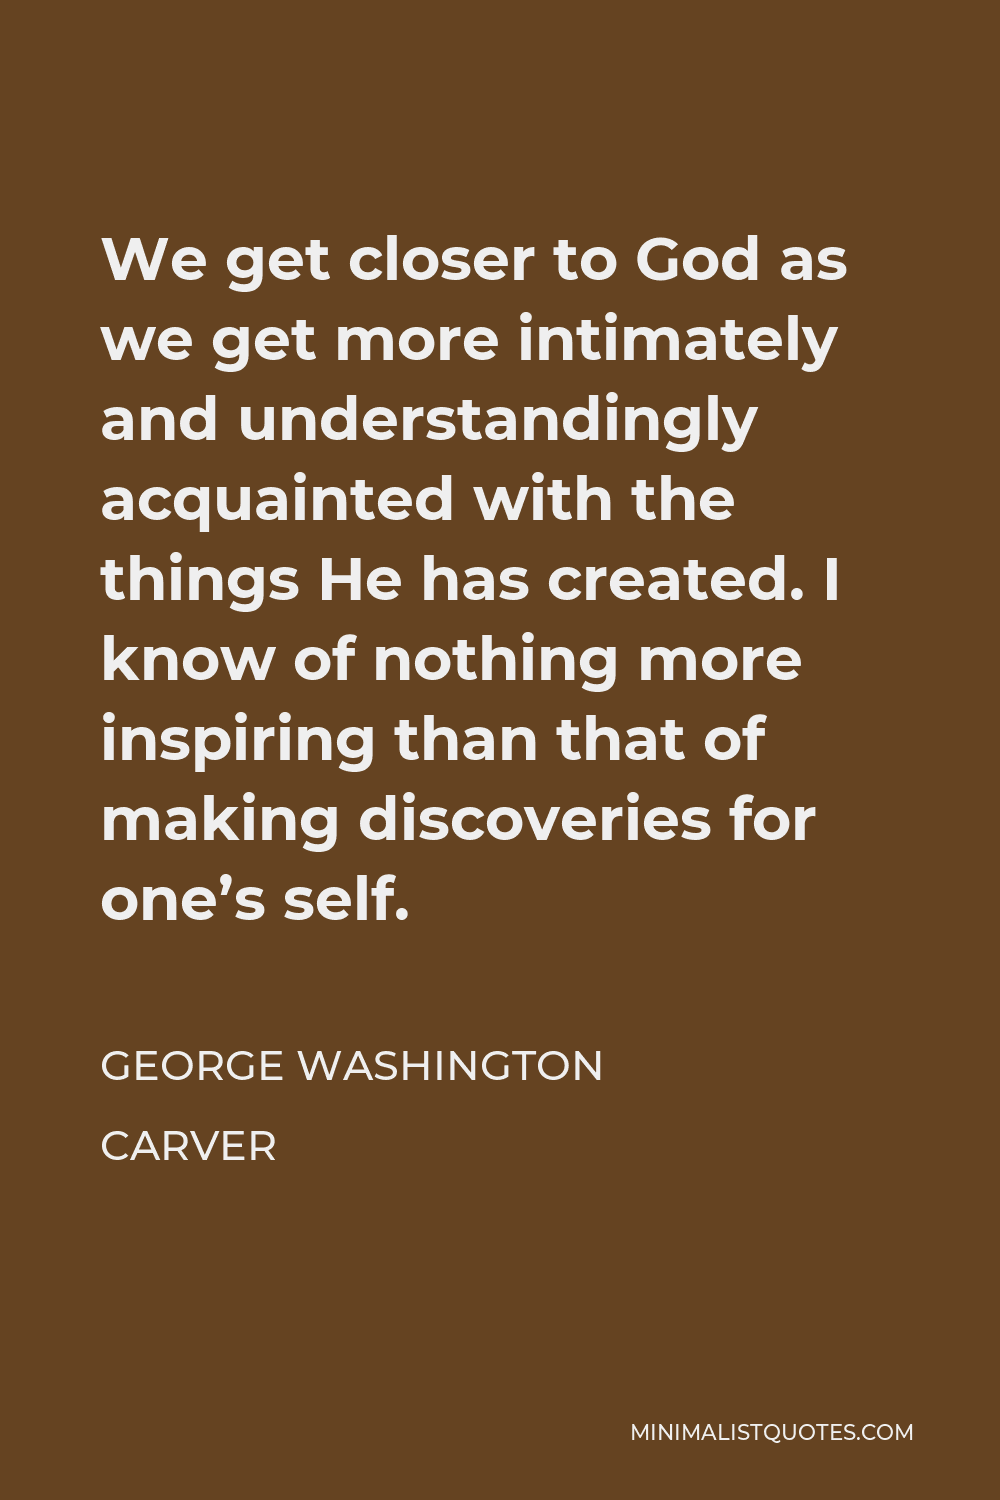 George Washington Carver Quote - We get closer to God as we get more intimately and understandingly acquainted with the things He has created. I know of nothing more inspiring than that of making discoveries for one's self.